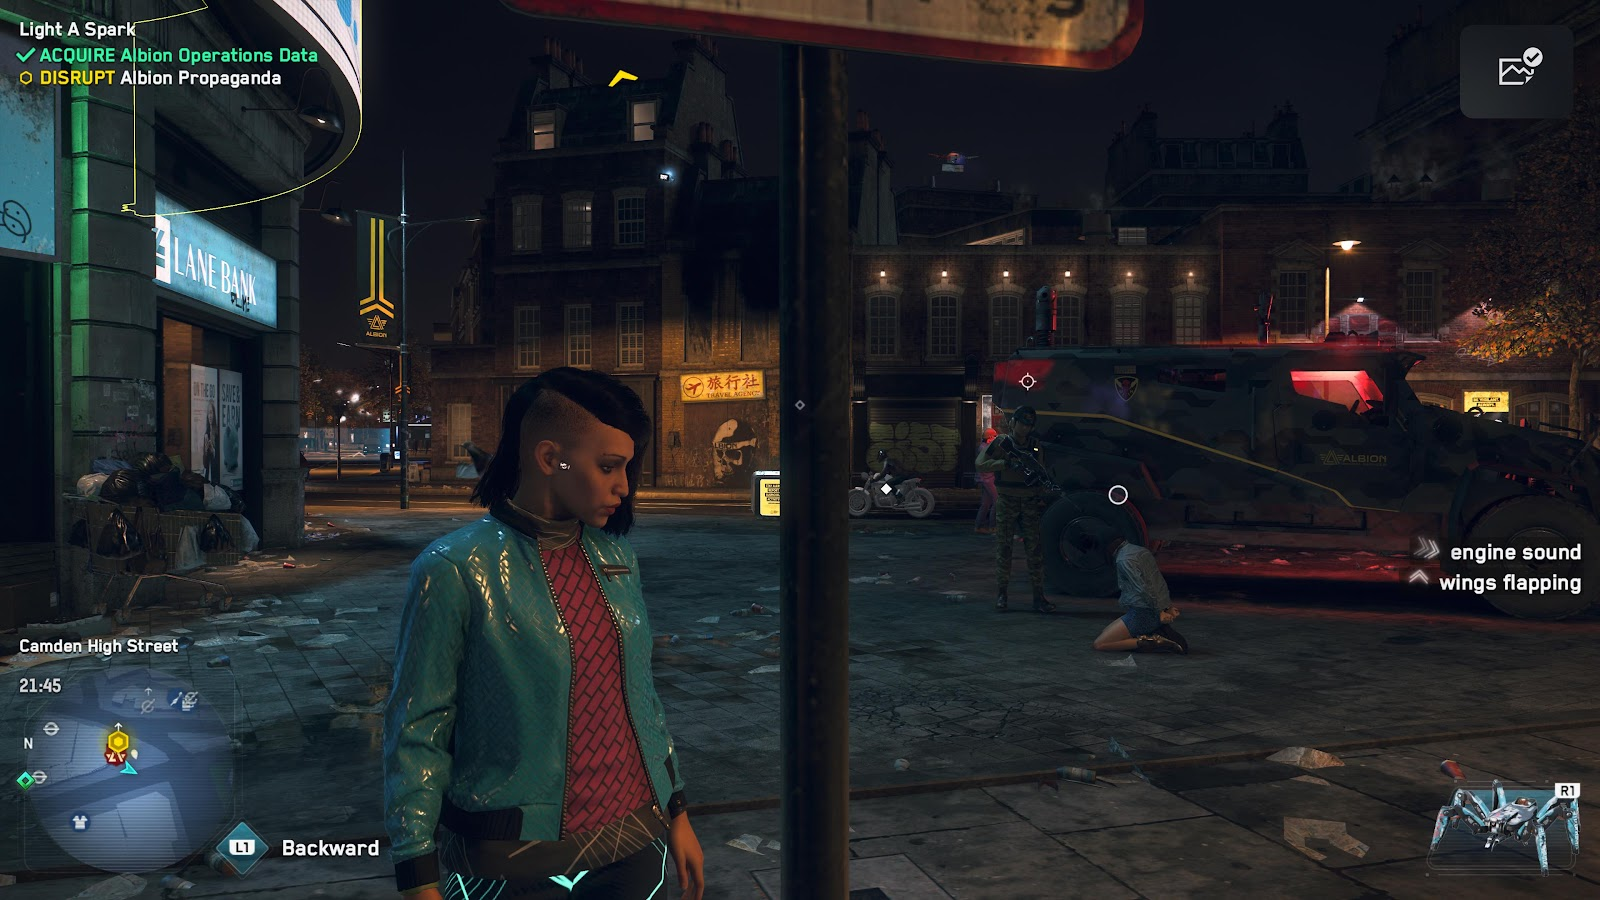 Watch Dogs character standing next to an Albion agent pointing his gun at a restrained woman.